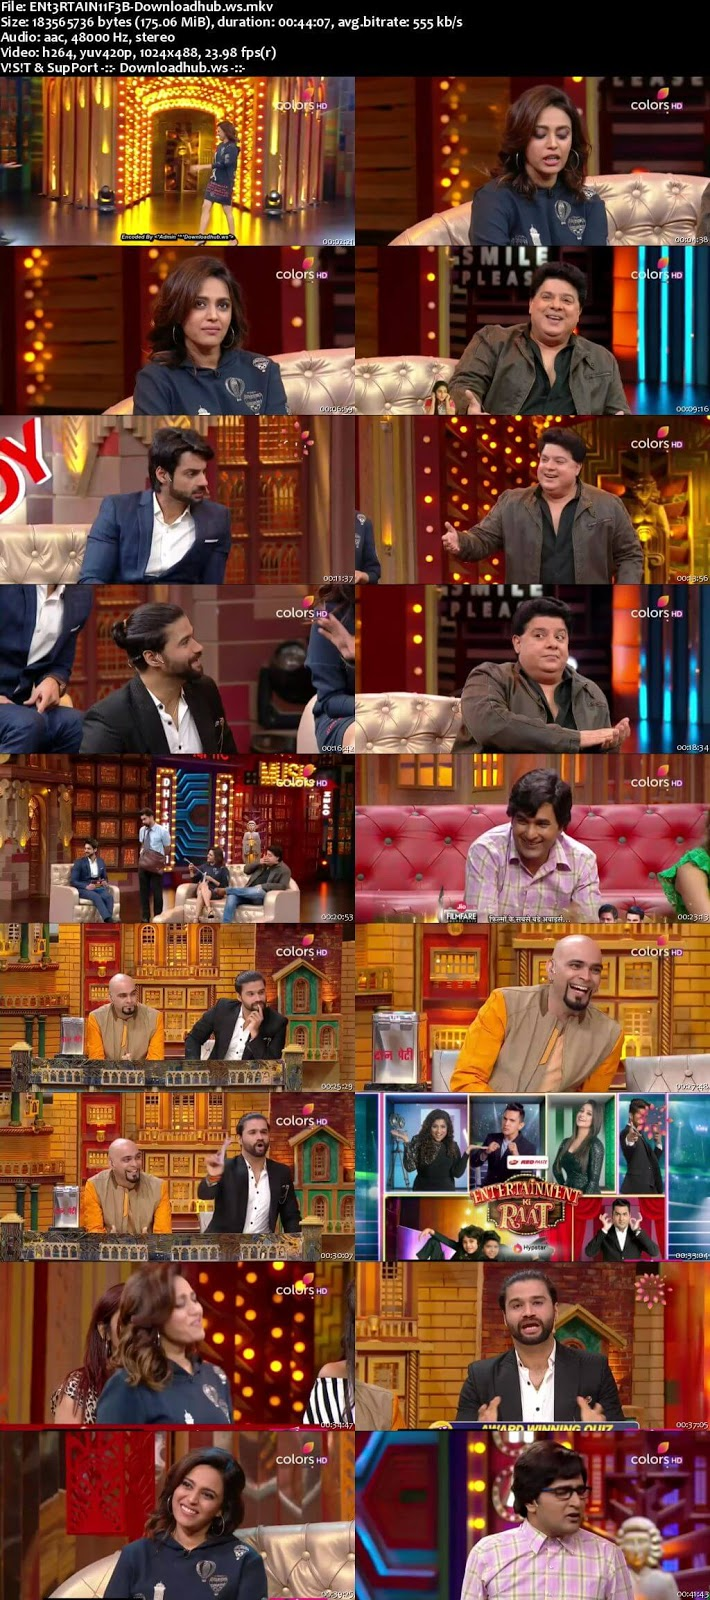 Entertainment Ki Raat 11 February 2018 Episode 25 HDTV 480p